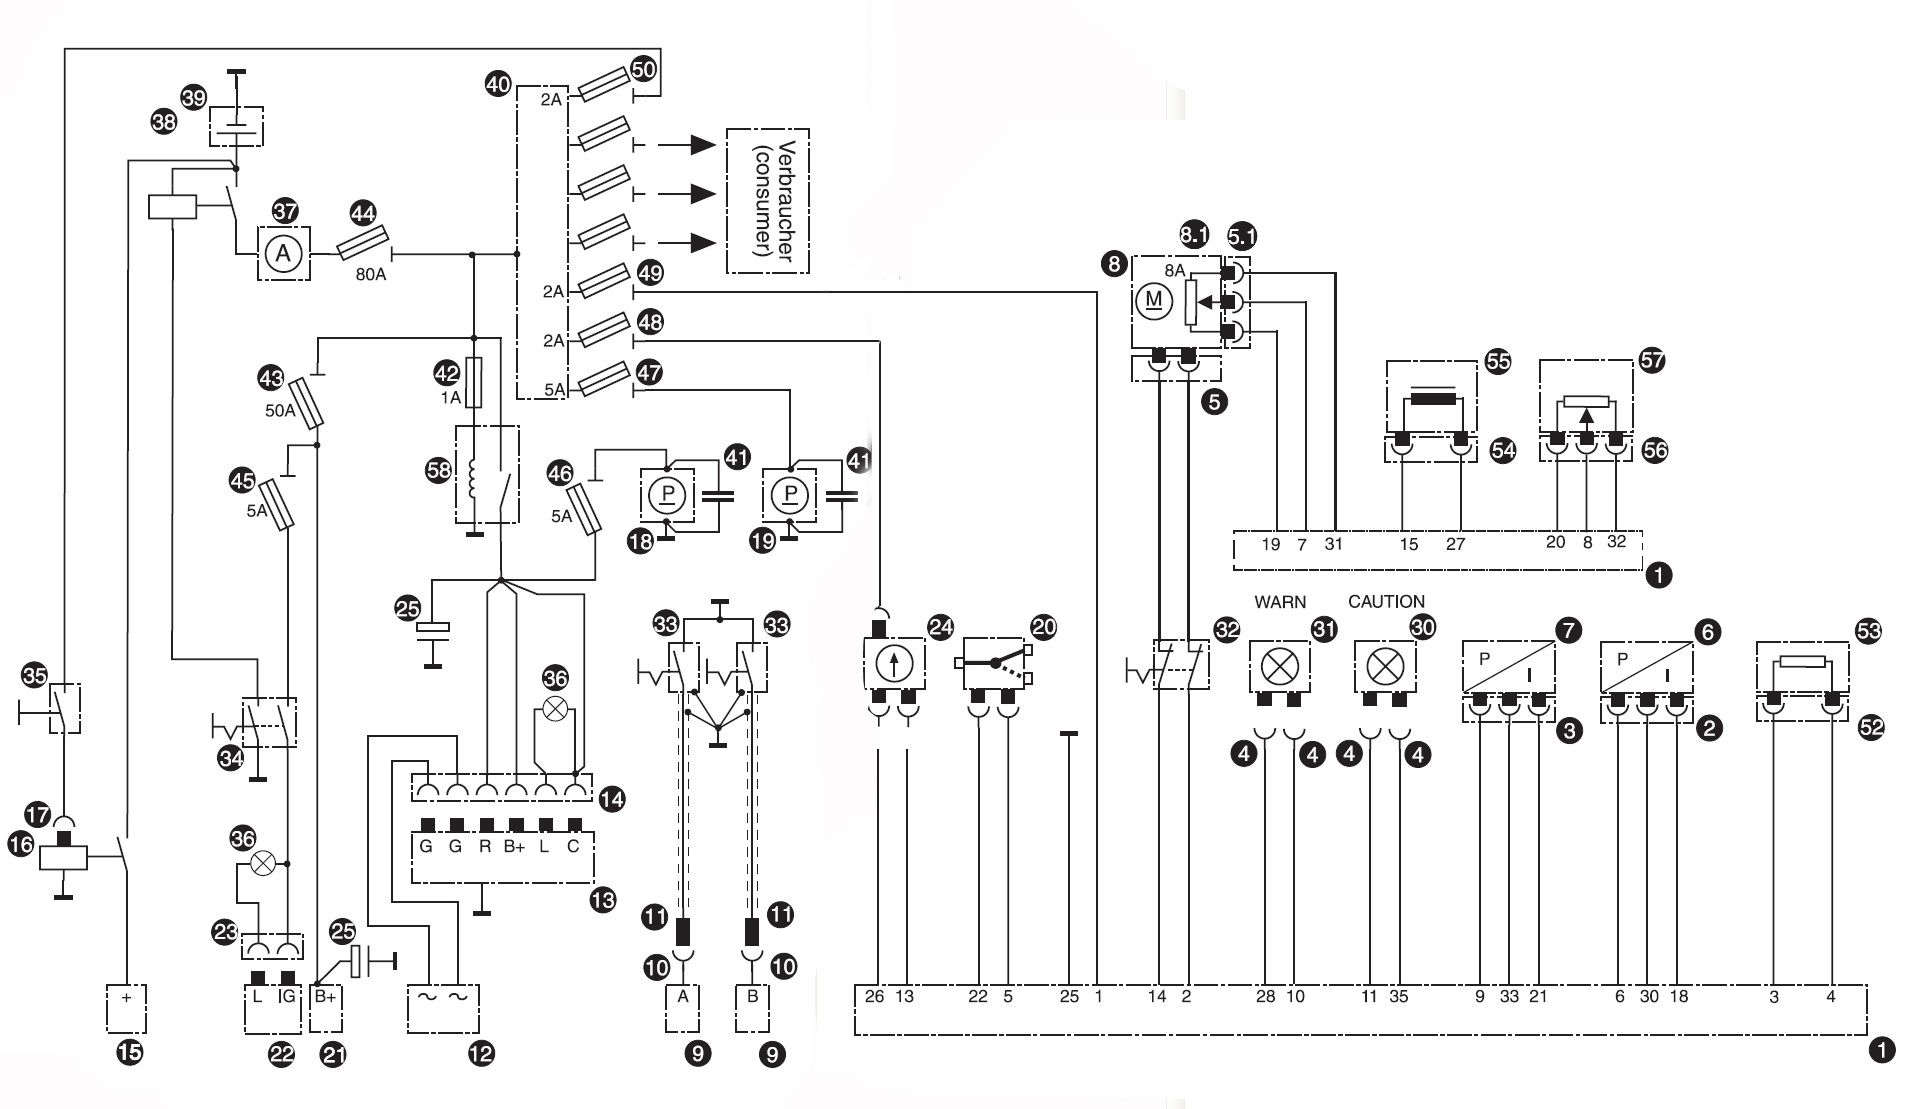 rotax 912 wiring diagram named organisedmum de \u2022aeroelectric connection manufacturer s data rh aeroelectric com rotax 912 ul wiring diagram